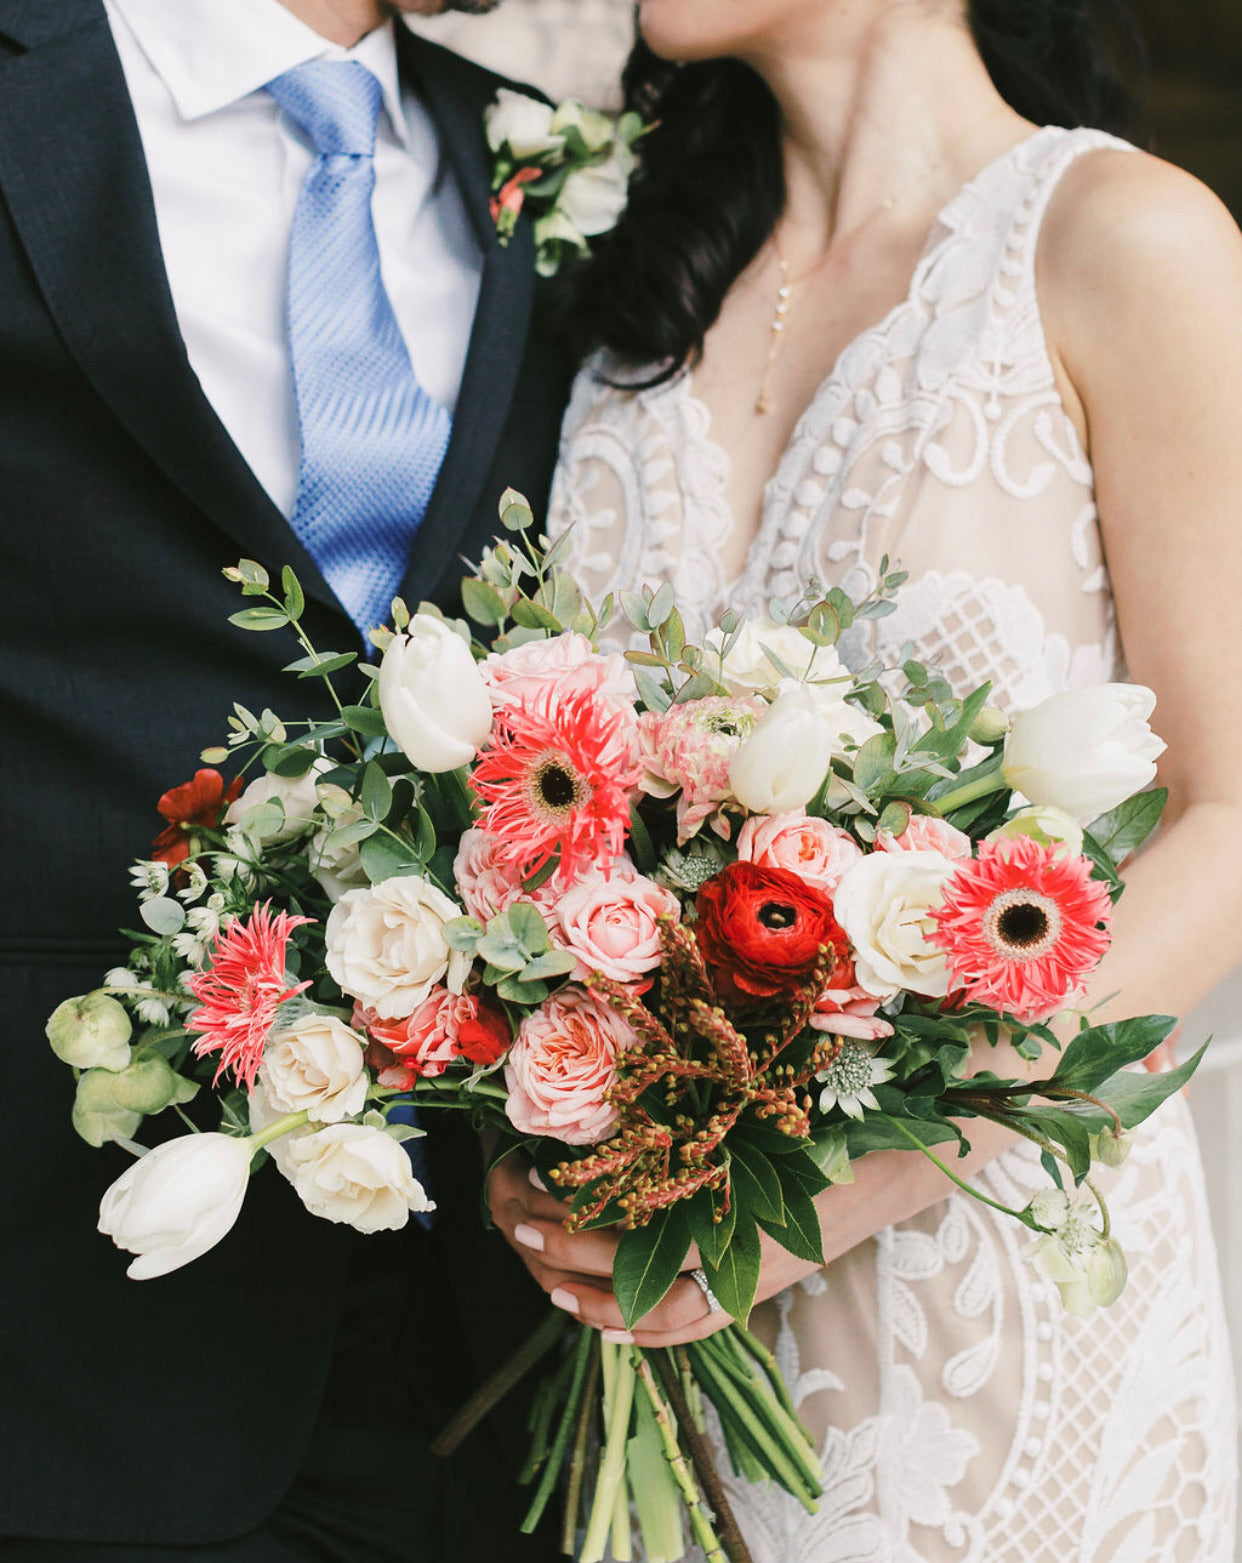 City Hall Wedding: Medium Garden Bouquet